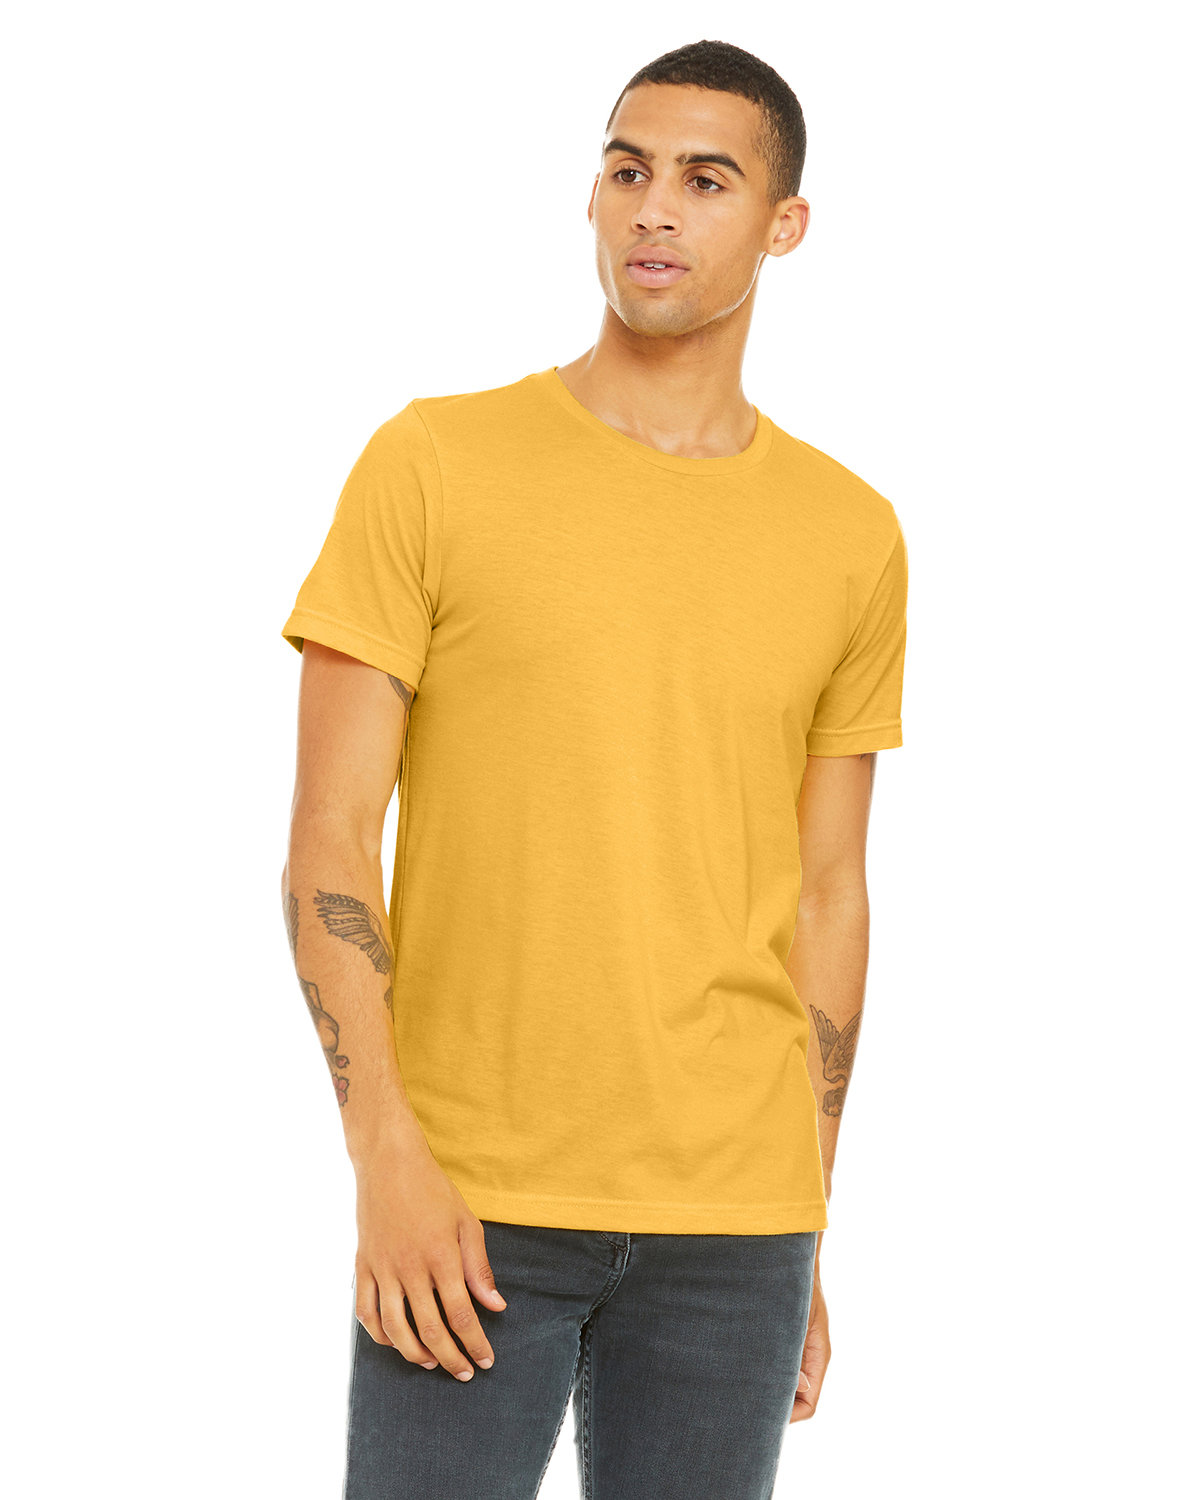 Bella + Canvas Unisex Heather CVC T-Shirt HTHR YELLOW GOLD